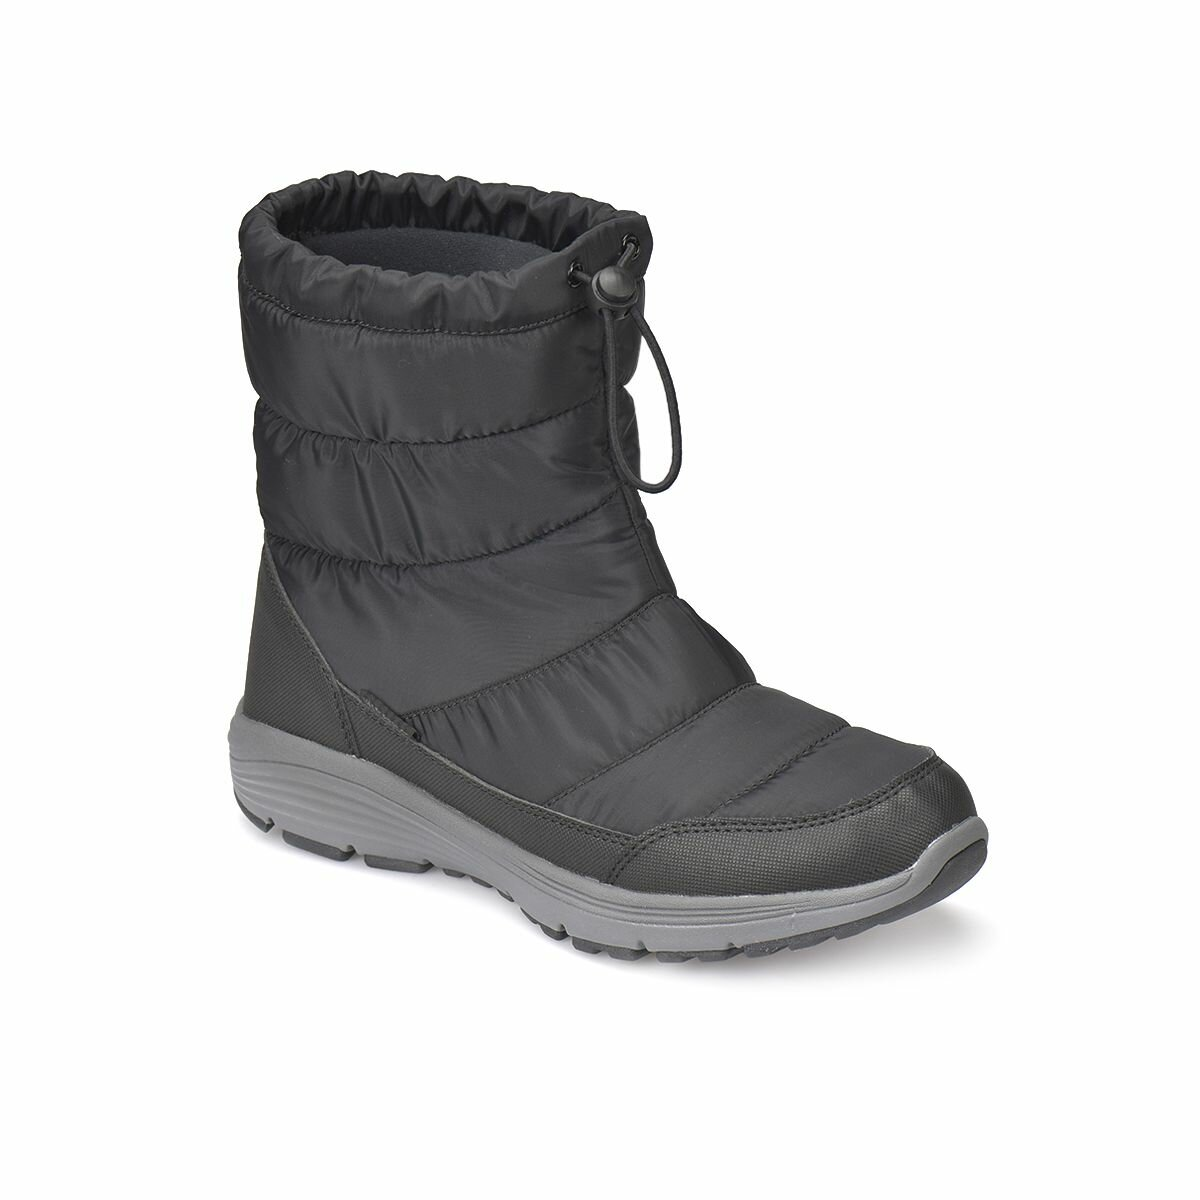 FLO Women's Boots High Boots Ankle Boots Leather Snow Boots Women LUMBERJACK PUNTO Purple